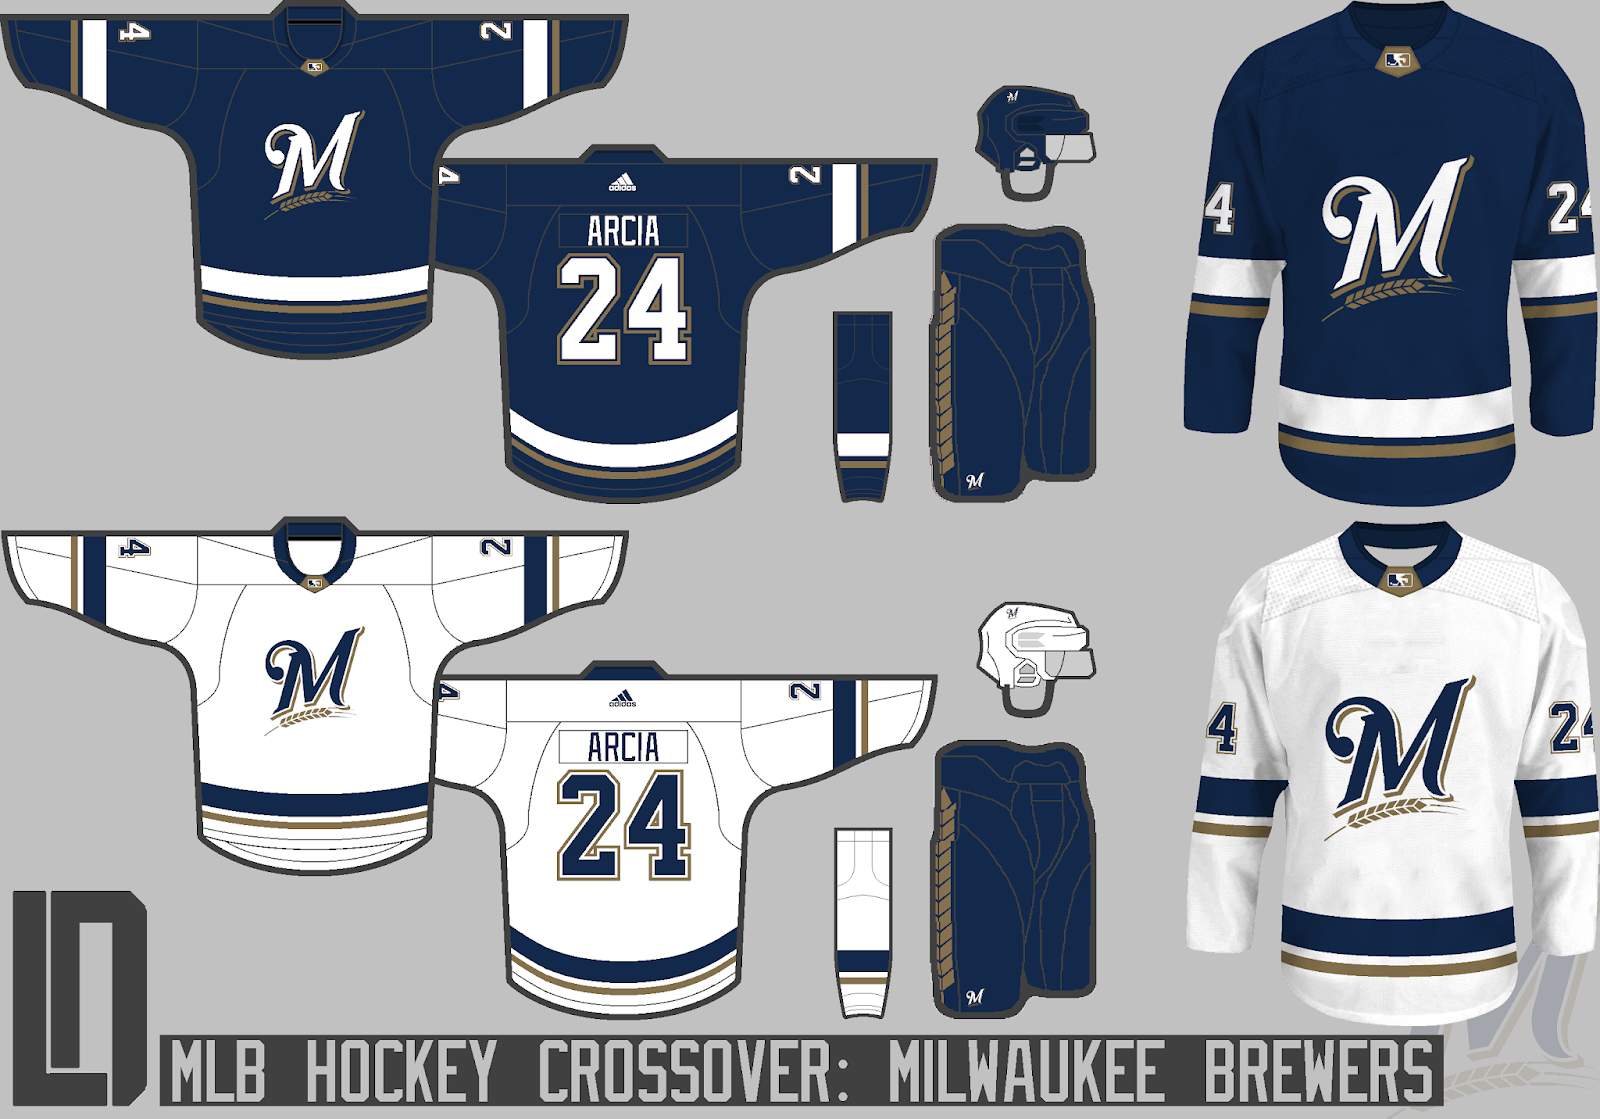 Milwaukee+Brewers+Concept.png